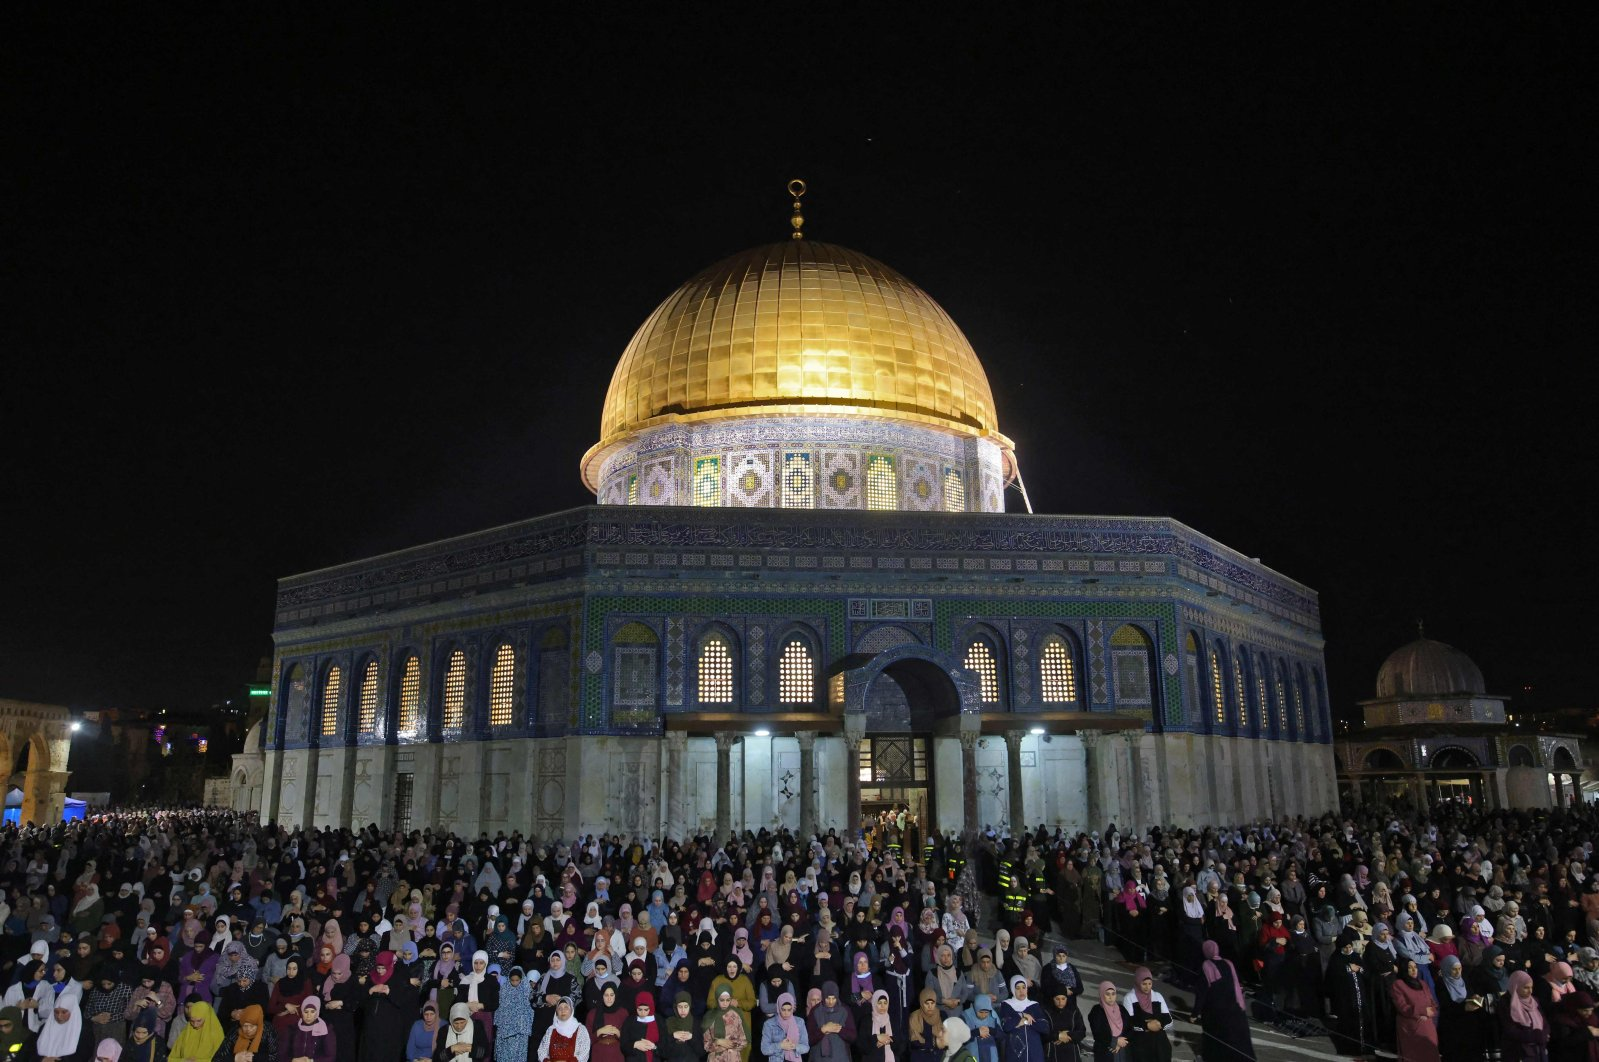 Palestinian devotees pray on Laylat al-Qadr (Night of Power) outside the Dome of the Rock in Jerusalem's Al-Aqsa Mosque compound during the Muslim holy month of Ramadan, Jerusalem, May 8, 2021. (AFP Photo)